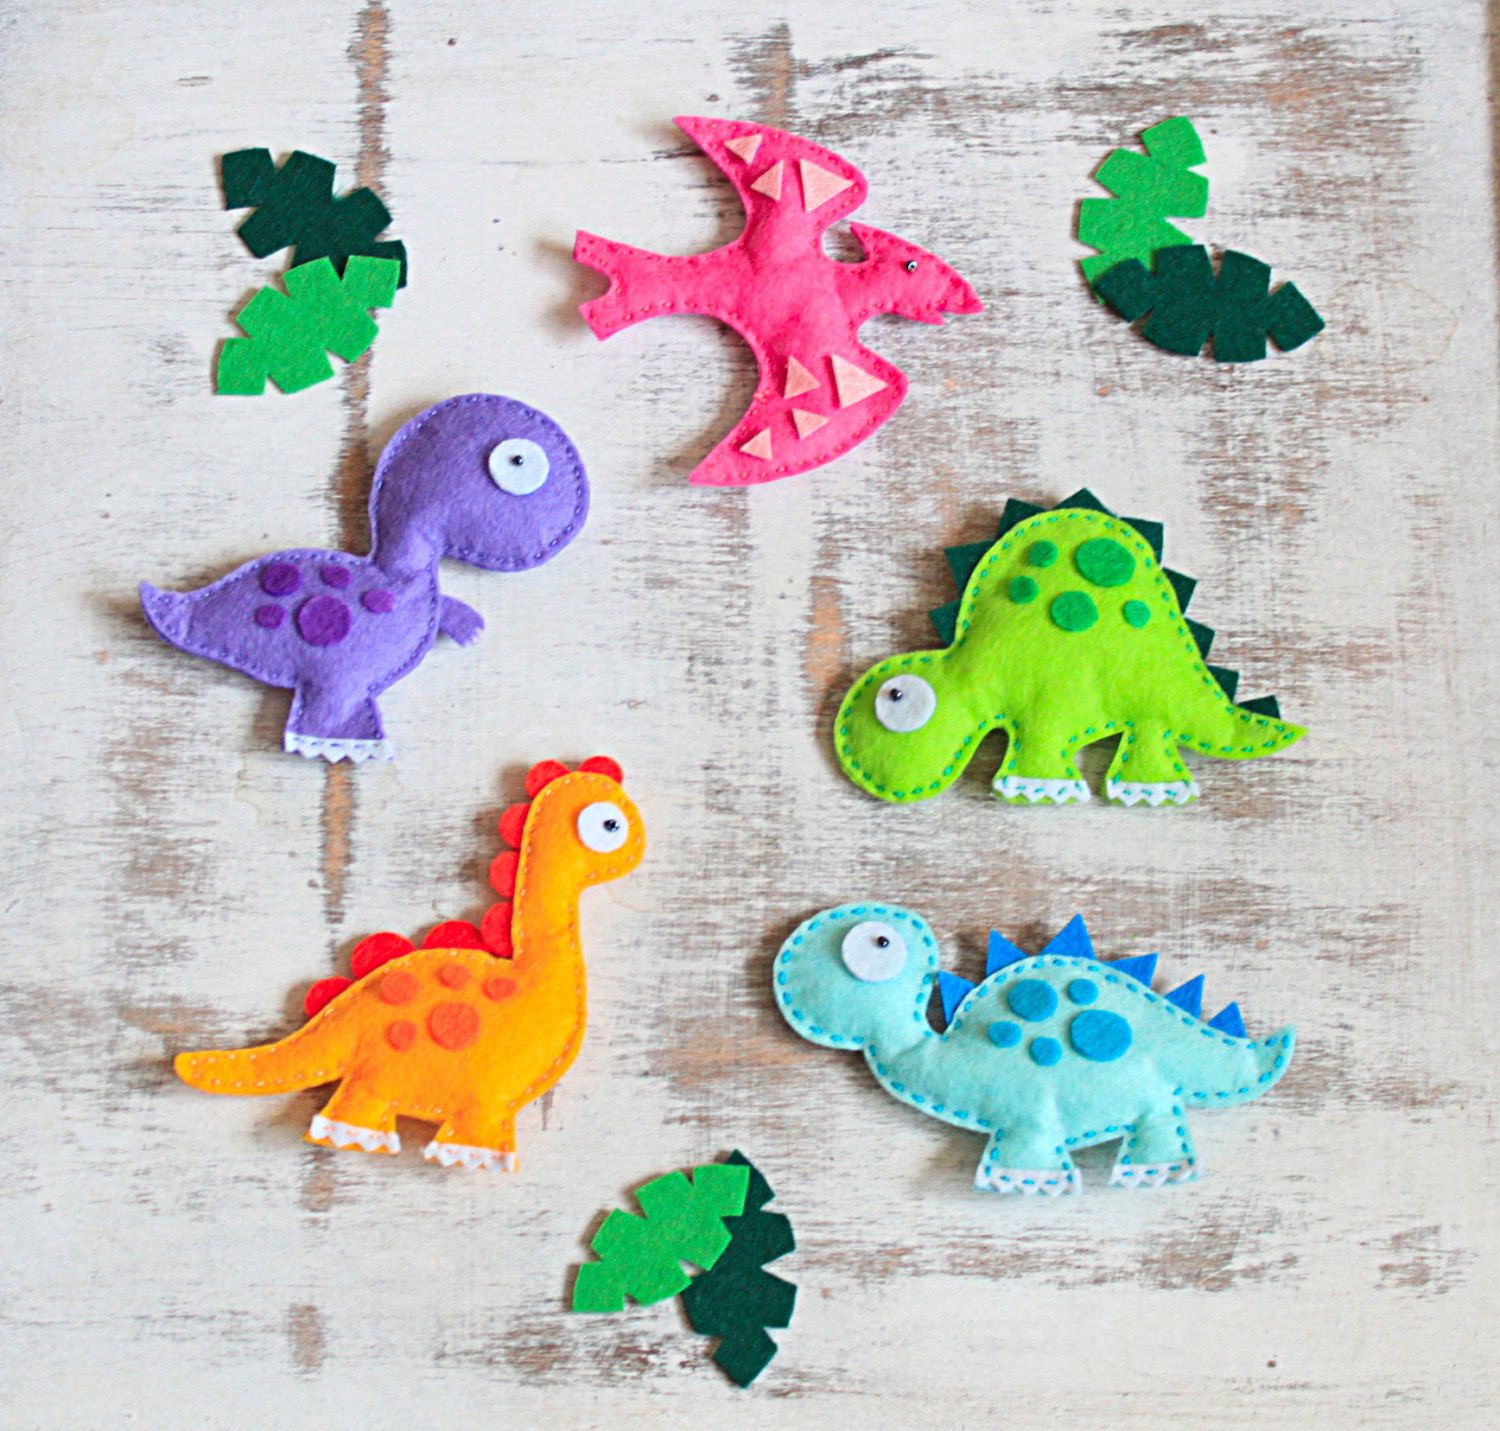 Felt Dinosaur Jurassic World Dinosaur Decorations Plush